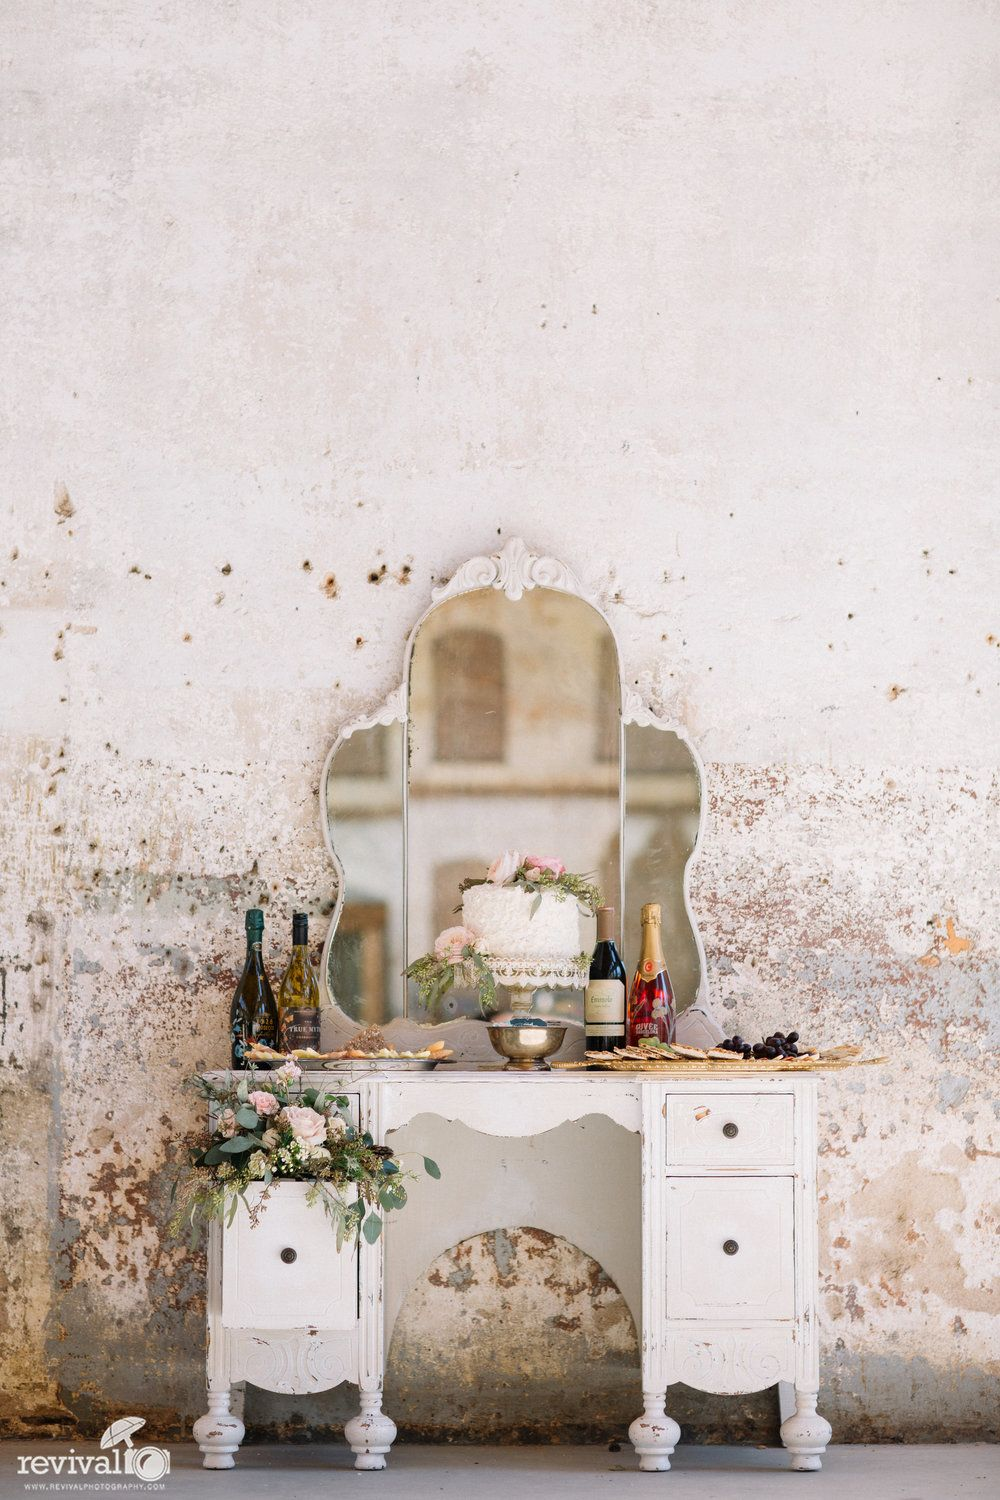 Southern Cotton Mill Romantic Industrial Shoot A Twist On The - Classic interior design romantic twist